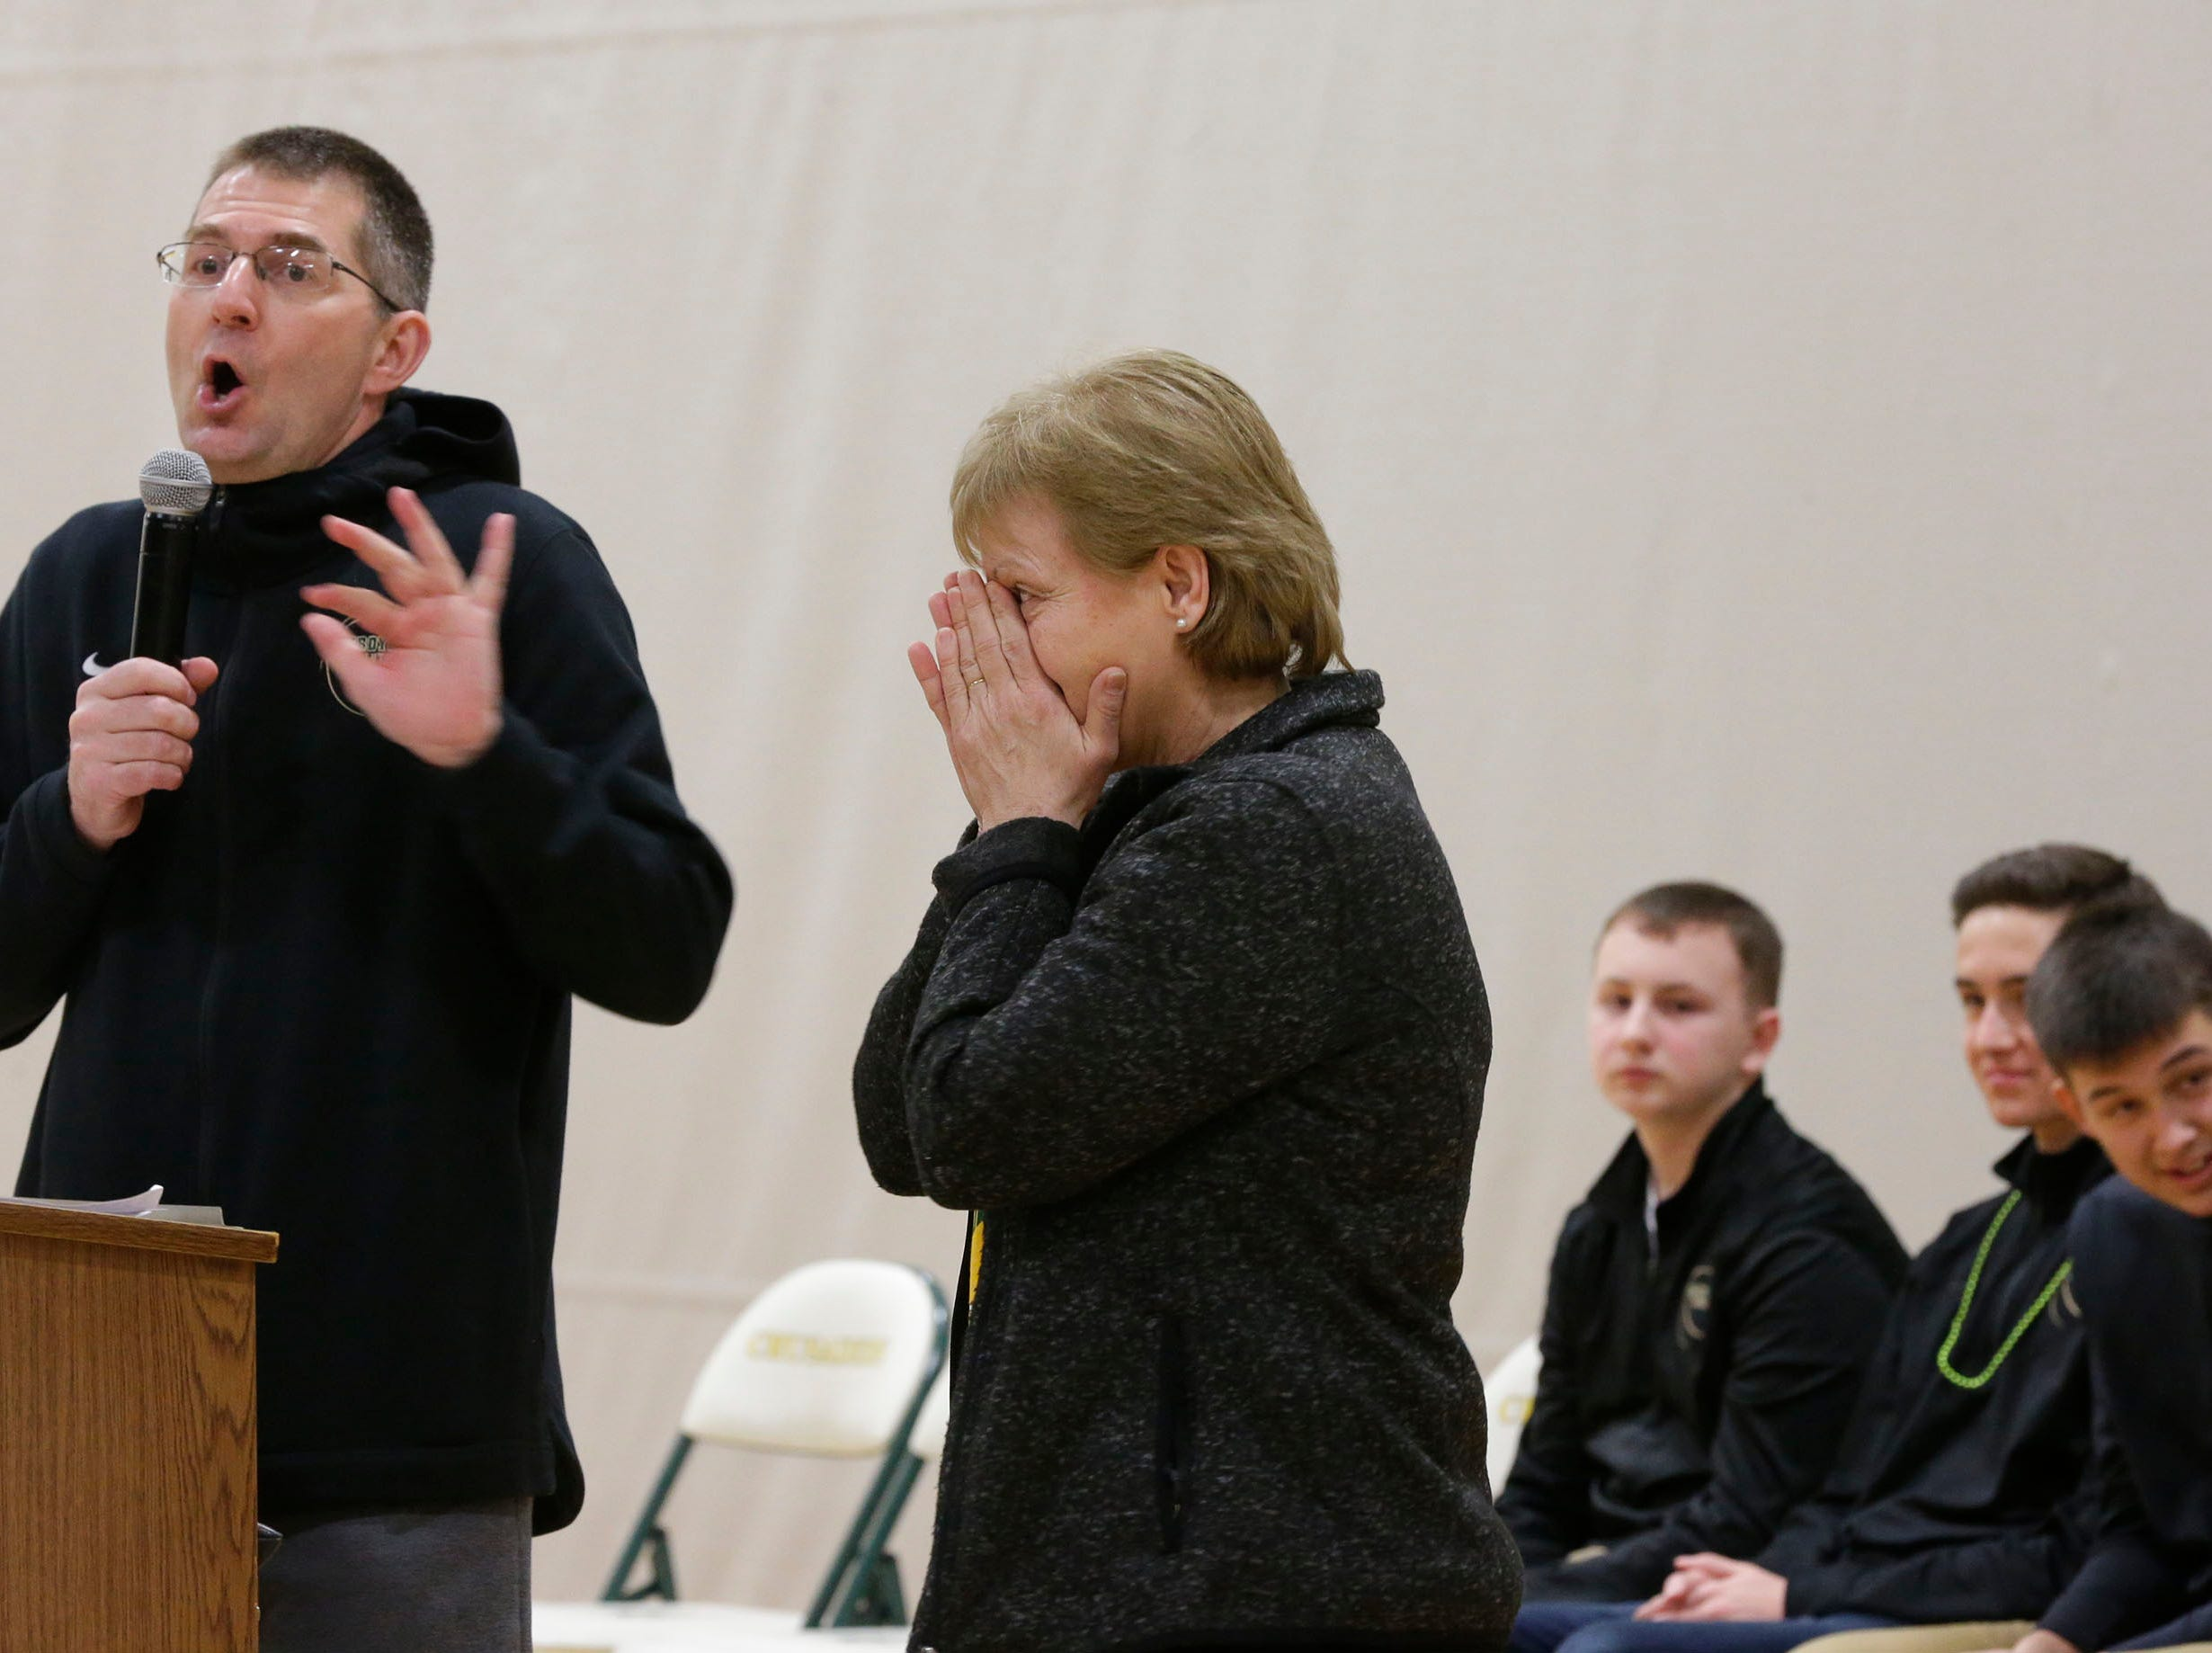 Sheboygan Lutheran teach Jeff Jurss reacts to teacher Julie Reseburg try to recite the names of the players on the team during a send off rally to Madison for WIAA state basketball tournaments, Thursday, March 14, 2109, in Sheboygan, Wis.